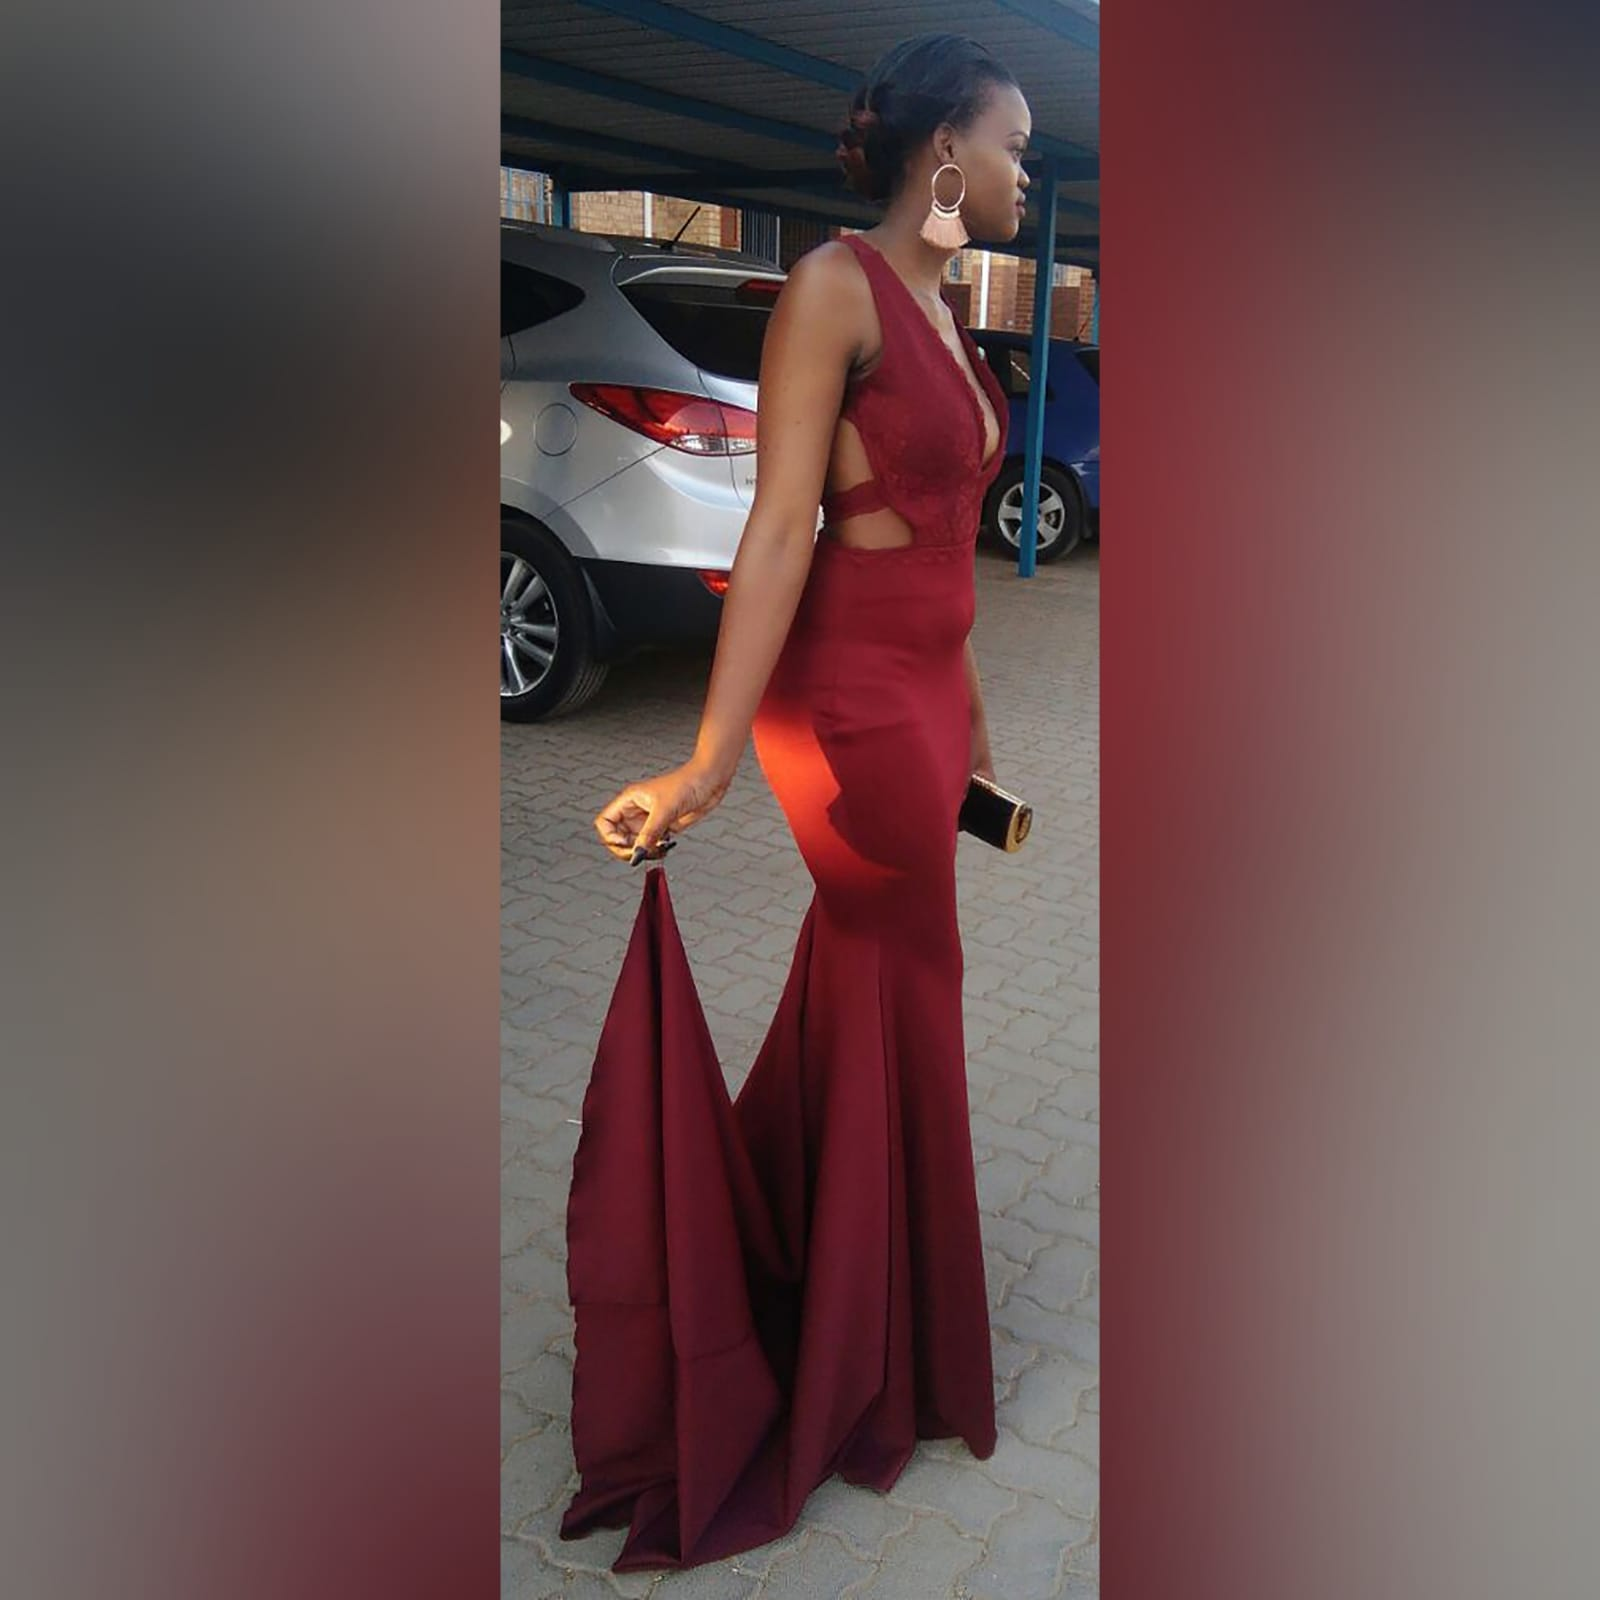 Maroon plunging neckline lace bodice matric dance dress 7 maroon plunging neckline lace bodice, soft mermaid matric dress with a train and an open back detailed with lace straps.